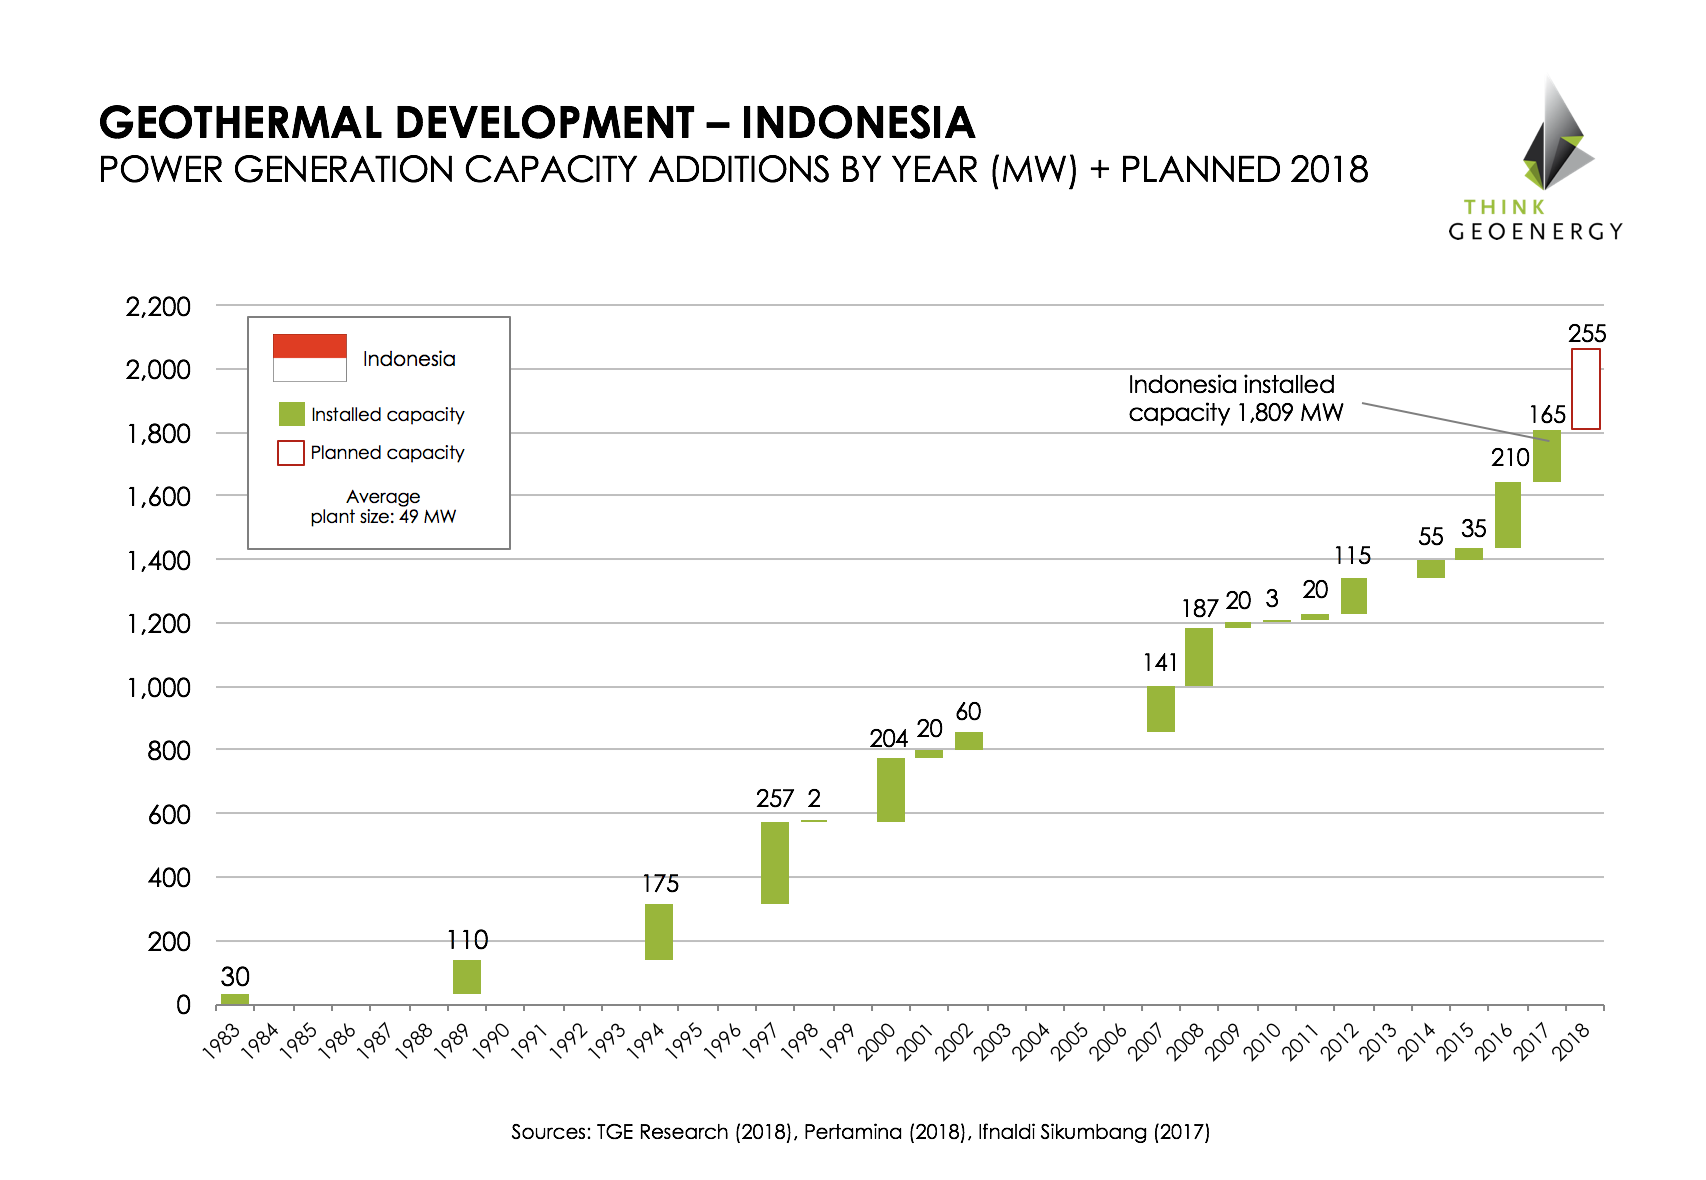 Indonesia_geothermalgrowth_1983-2018